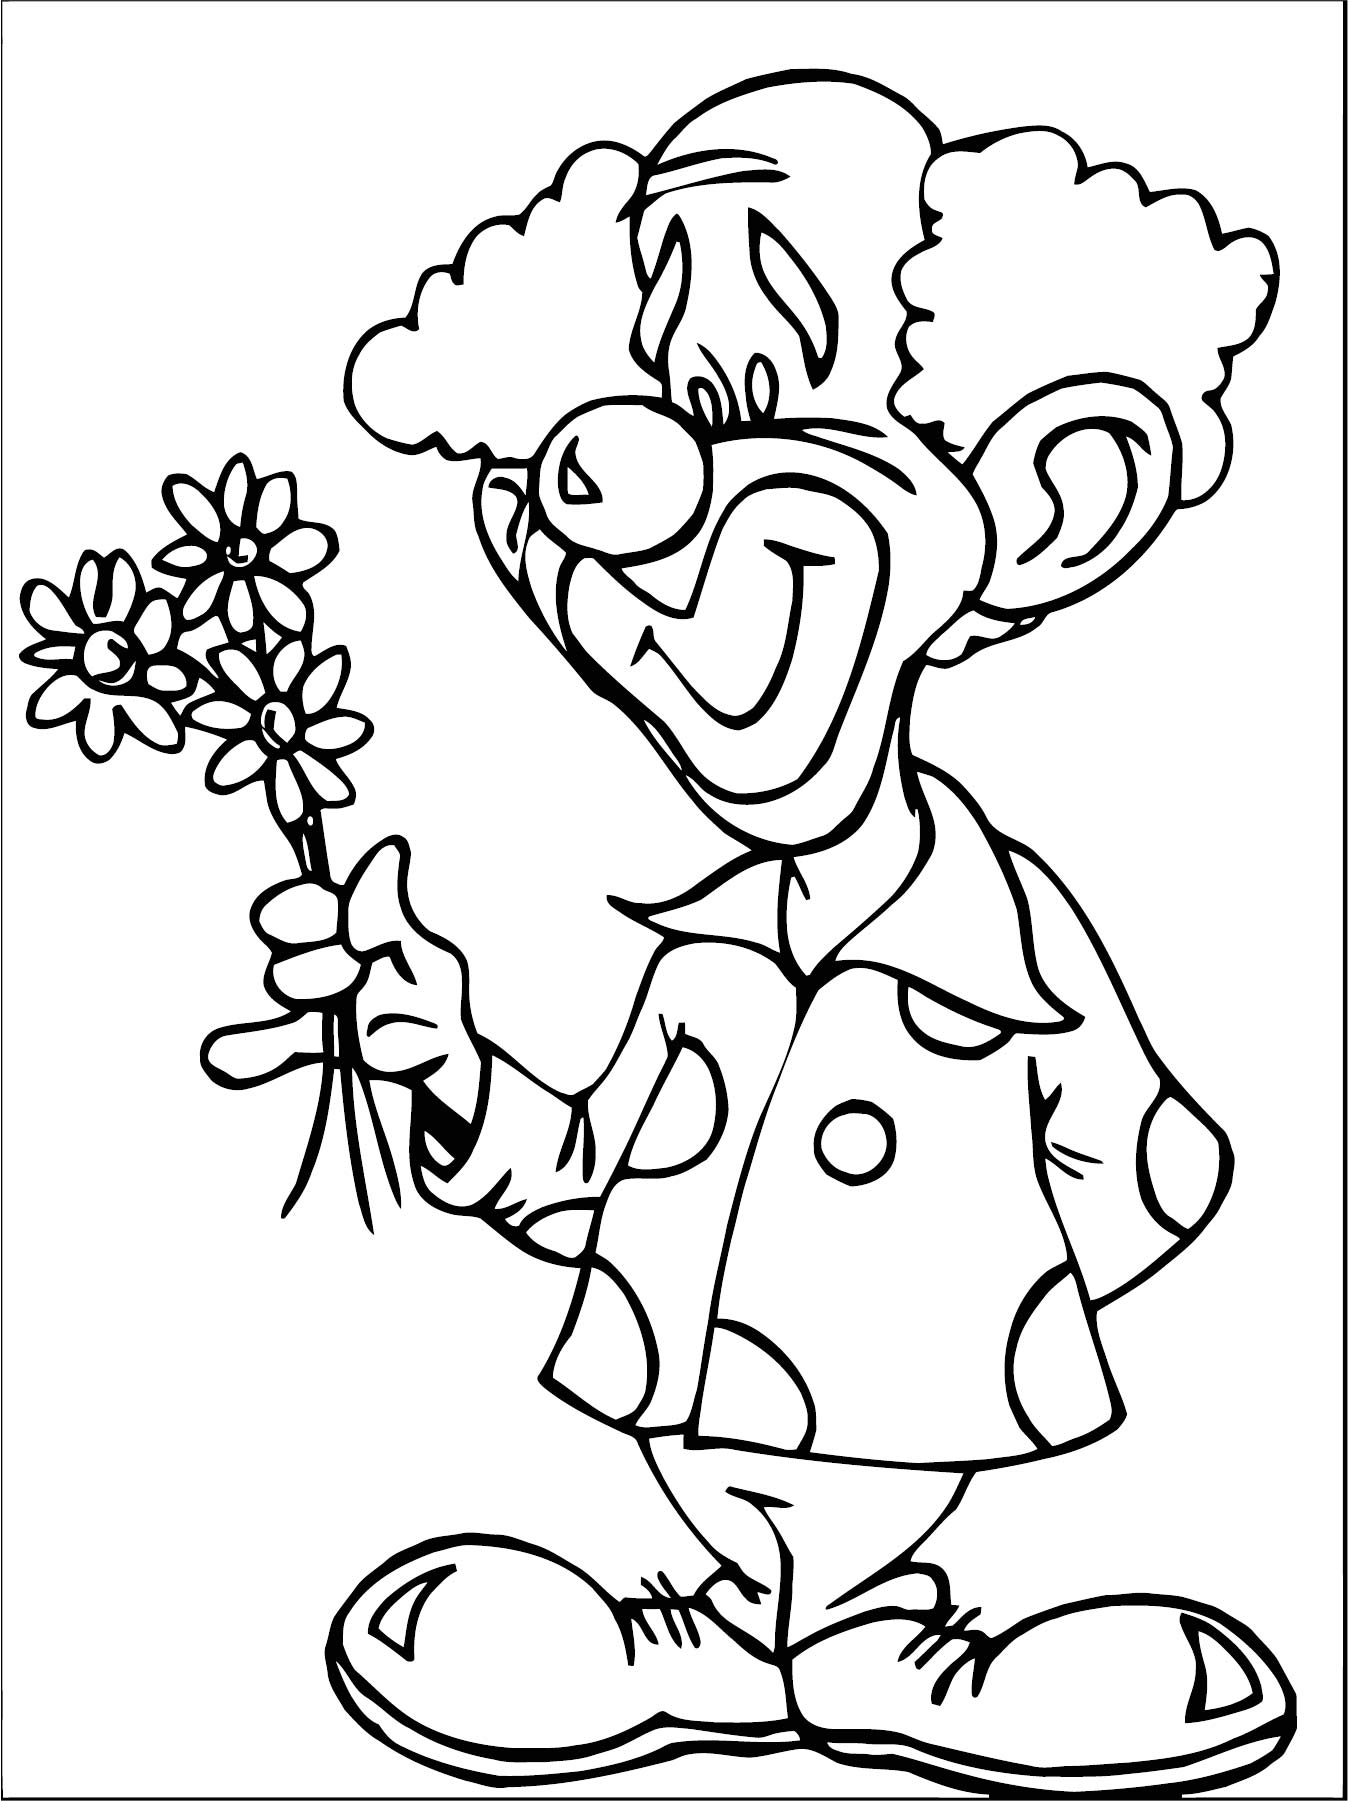 Clown Coloring Page WeColoringPage 080